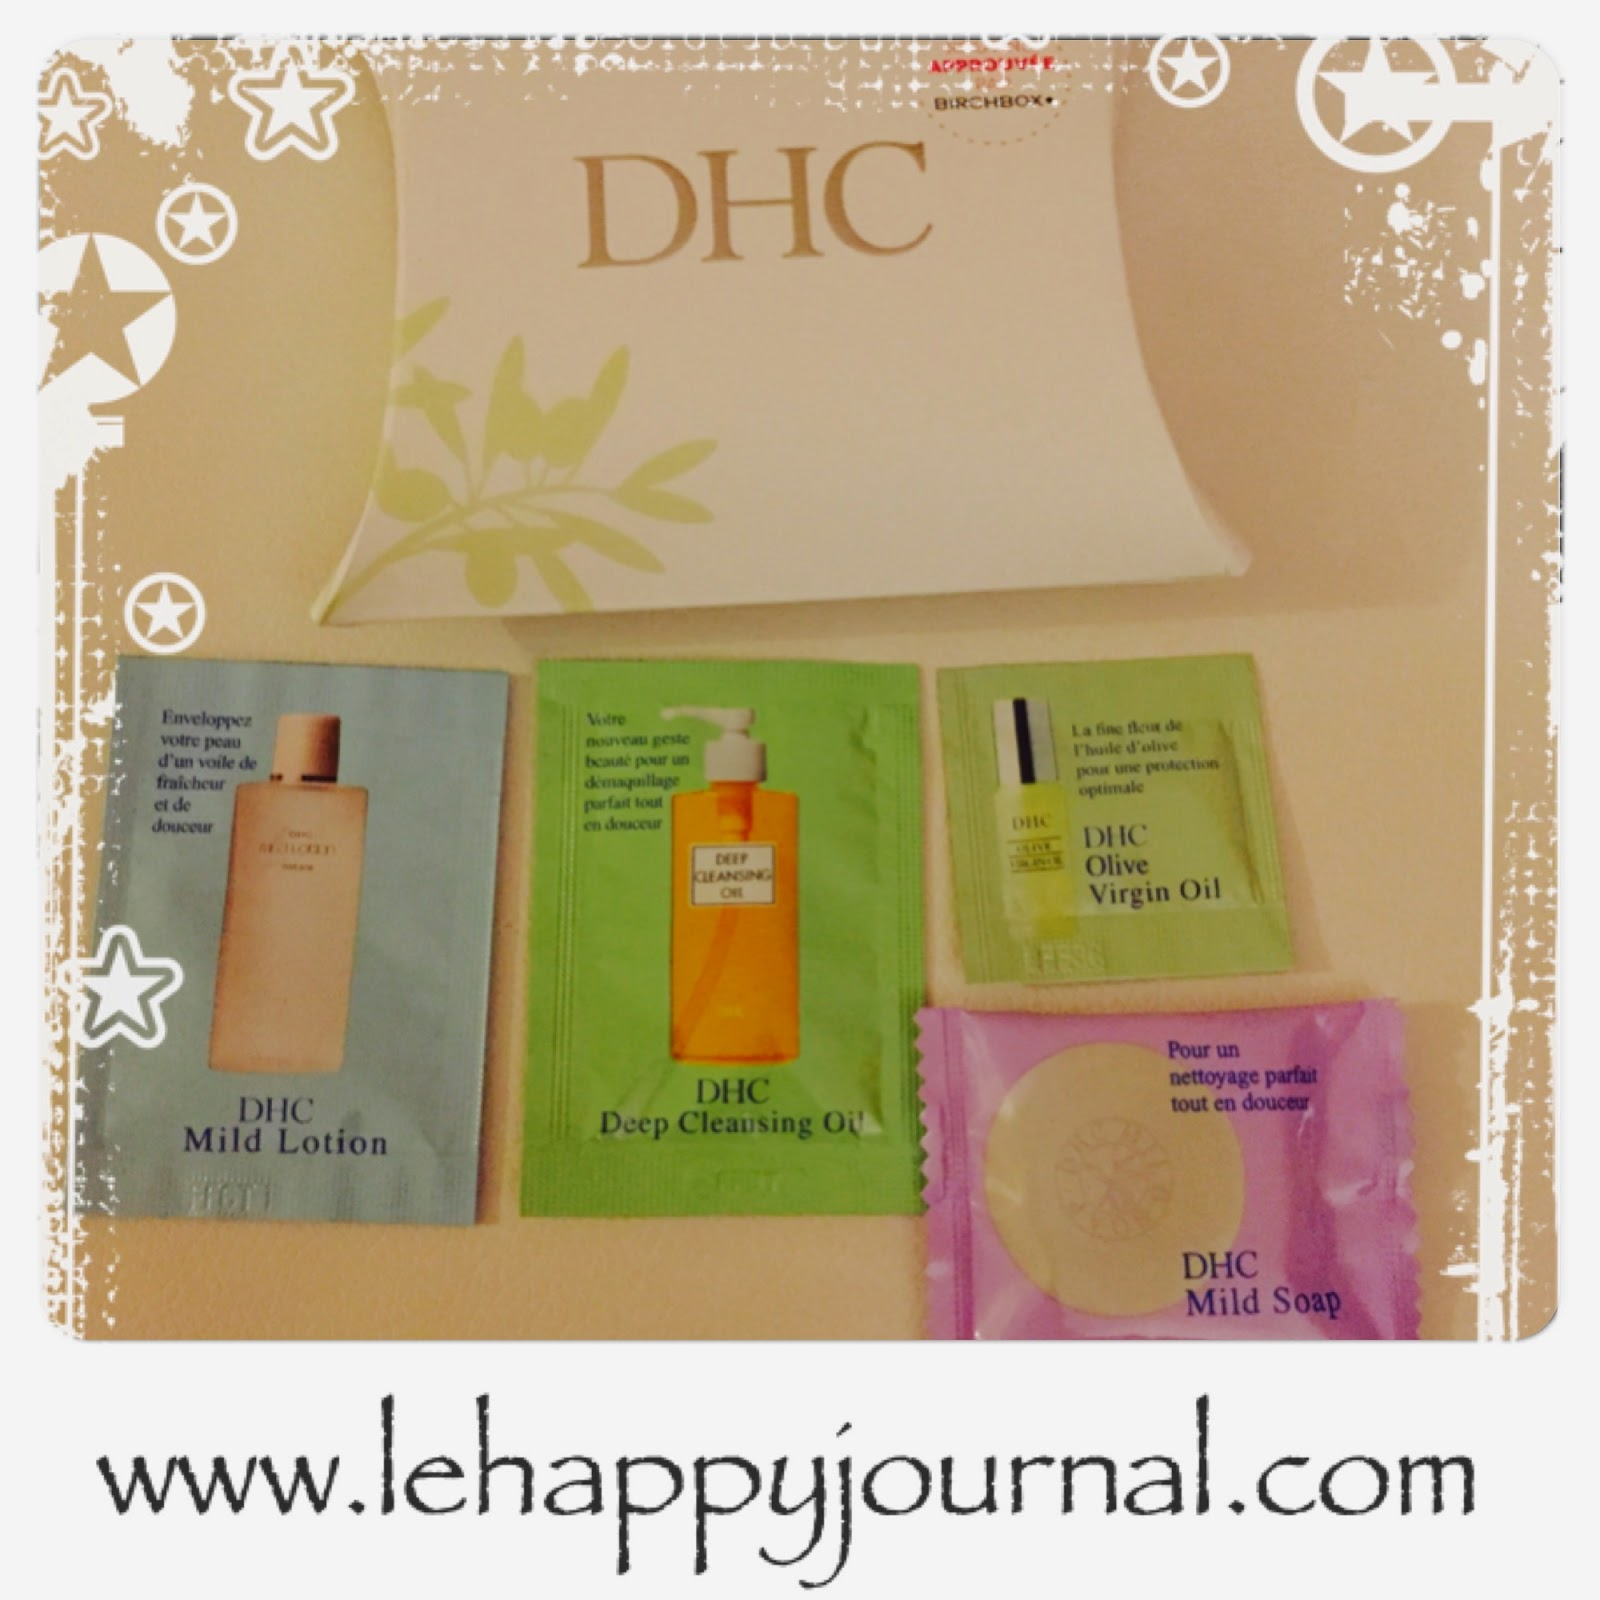 birchbox, novembre, box, paul and joe, stella and dot, ghd, DHC, sabon, pixi, beaver, happy journal